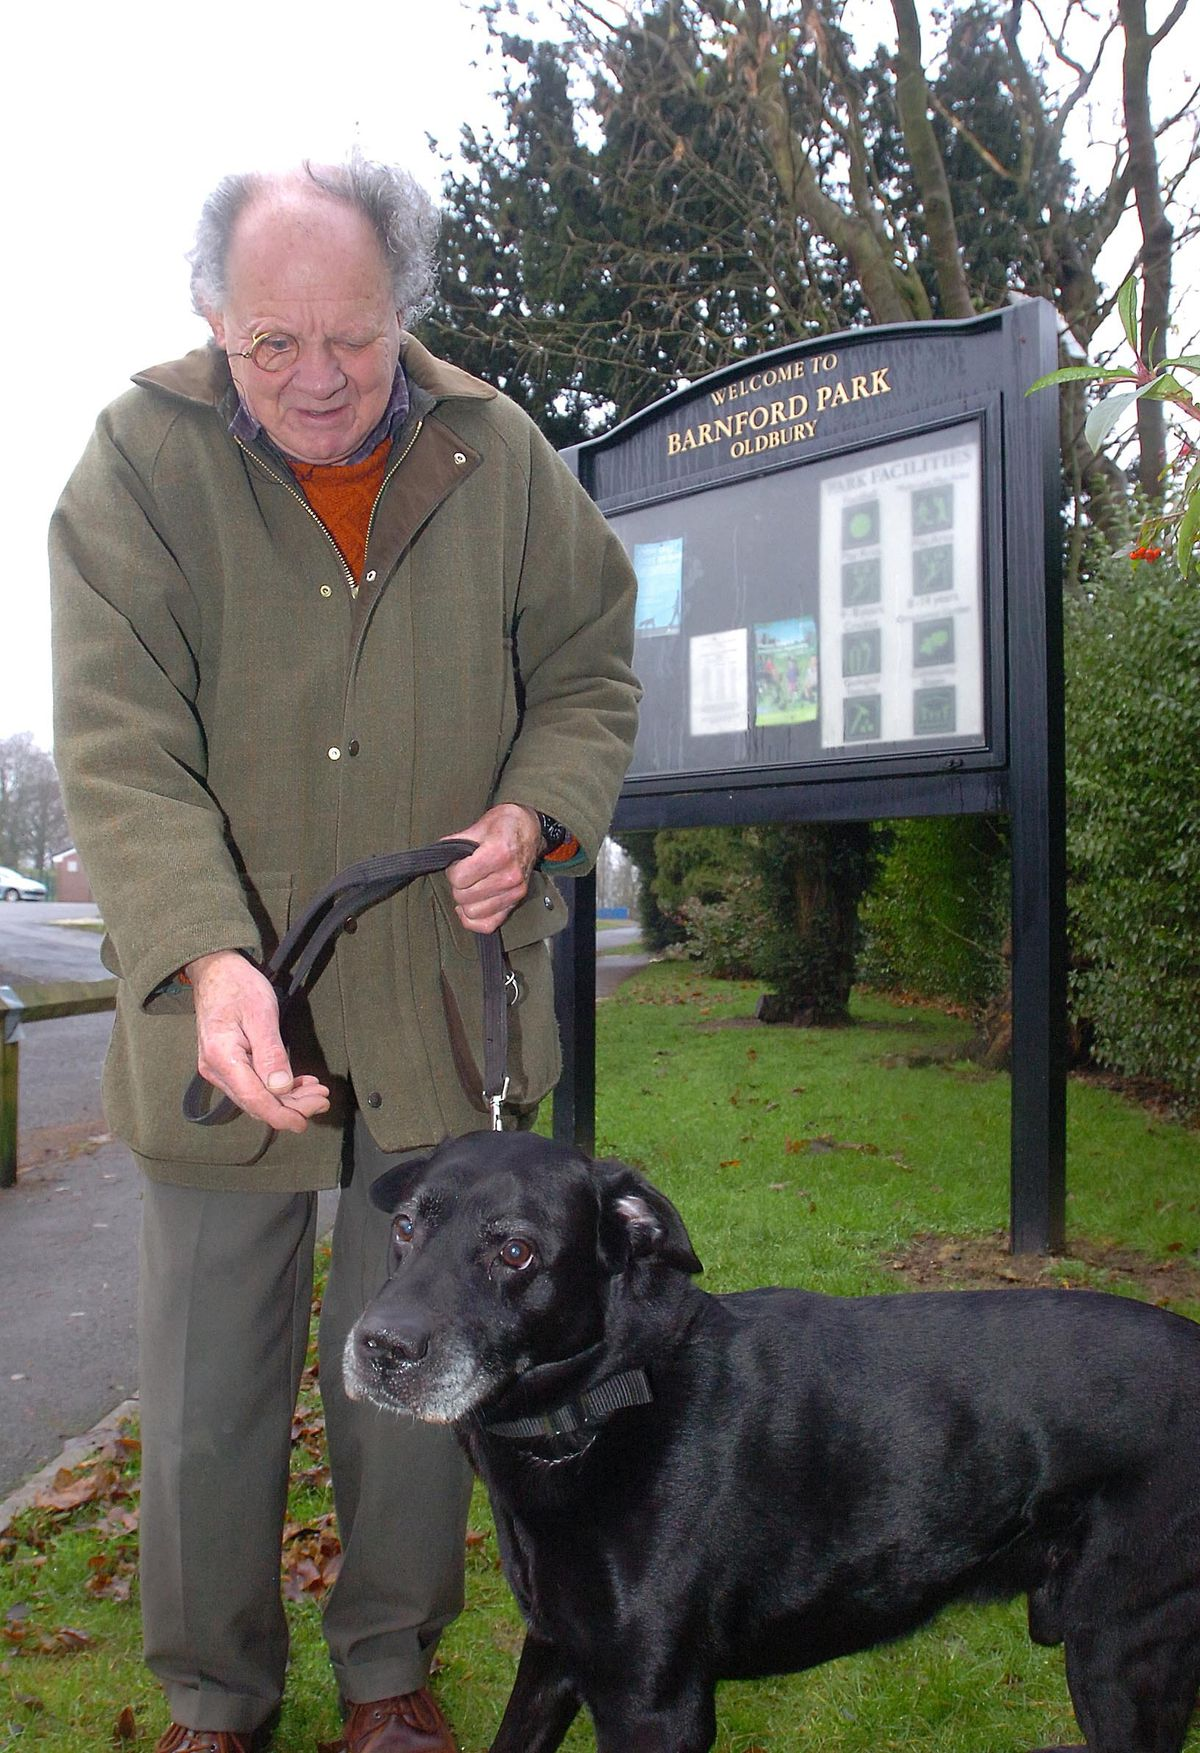 Mr Lloyd with his dog Brewie at Barnford Park, Oldbury, in 2008